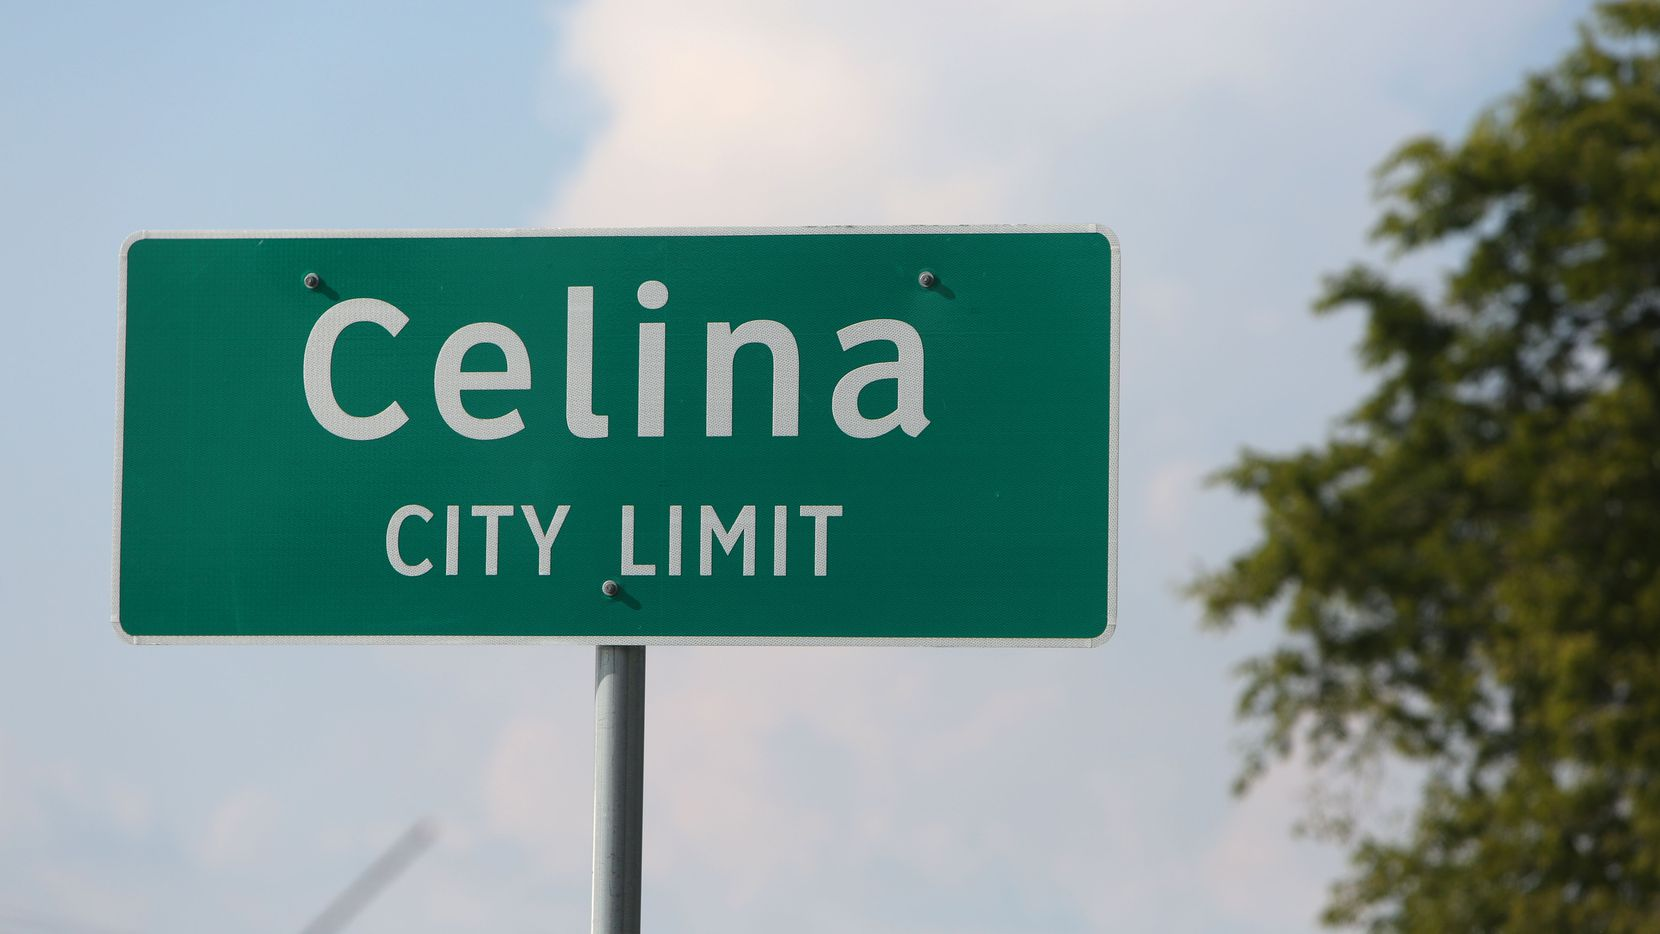 Grand Homes and First Texas homes are building in the new community in Celina.